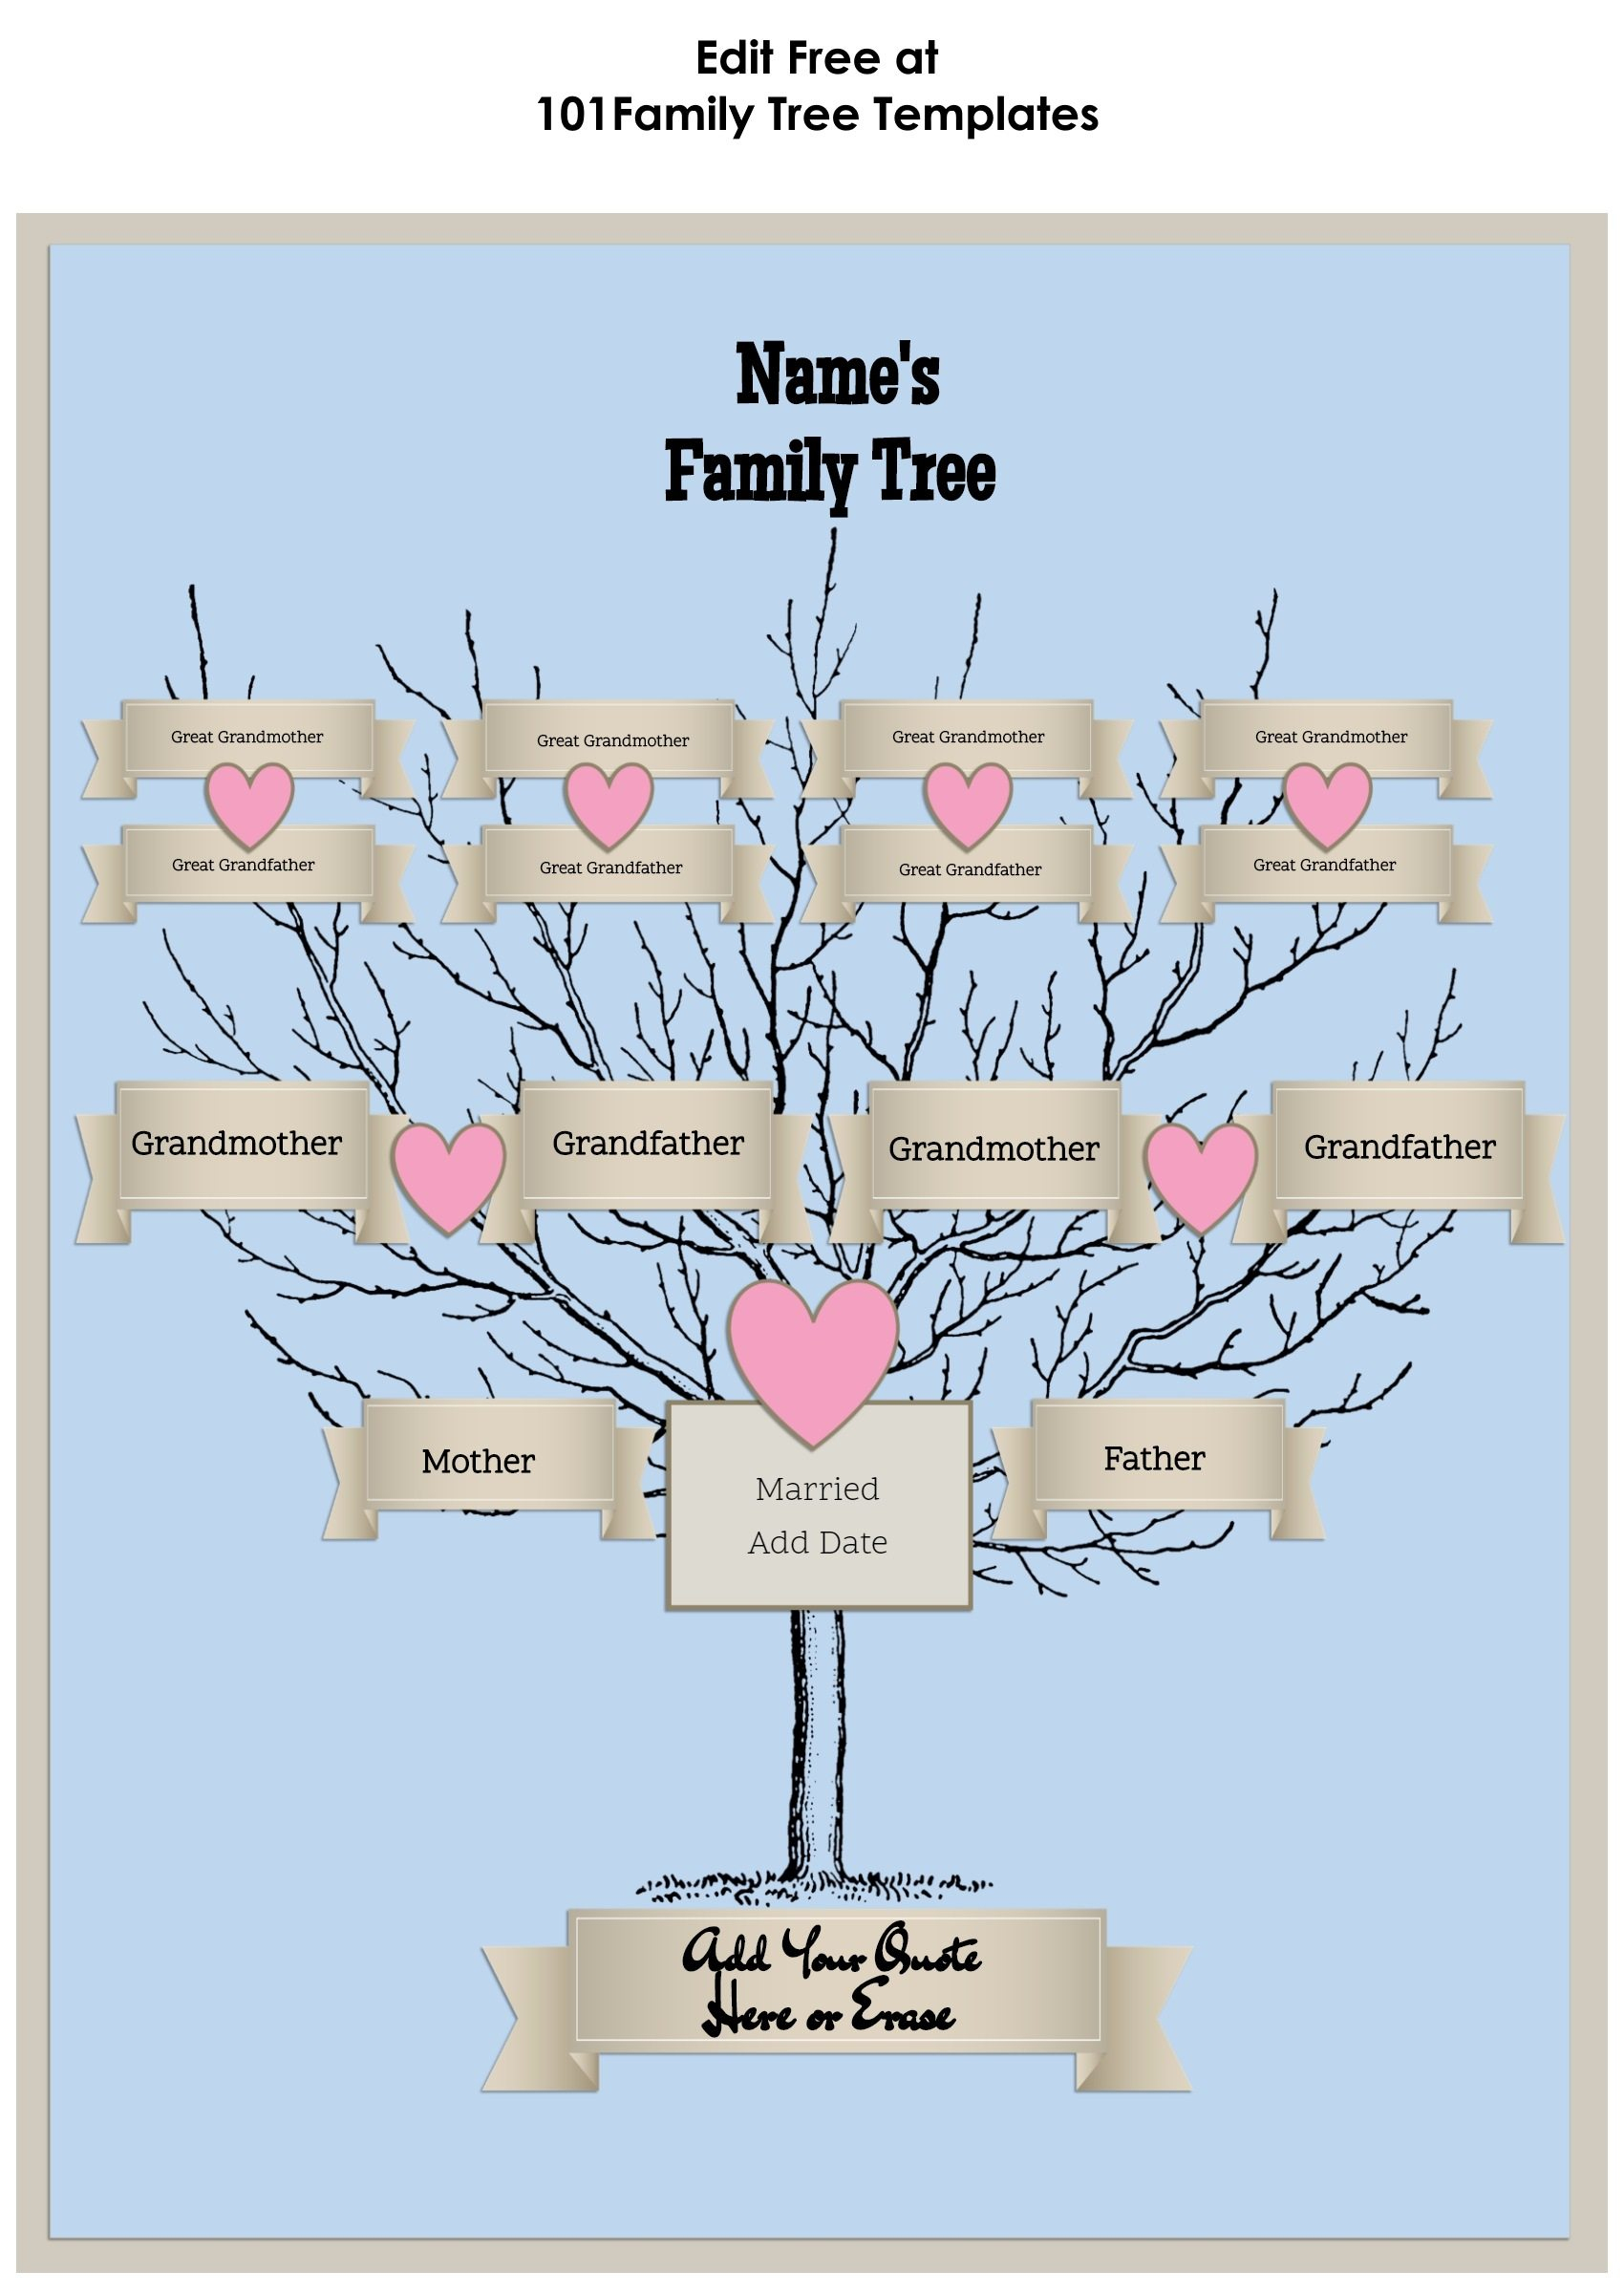 3 Generation Family Tree Generator | All Templates Are Free To Customize - Family Tree Maker Free Printable